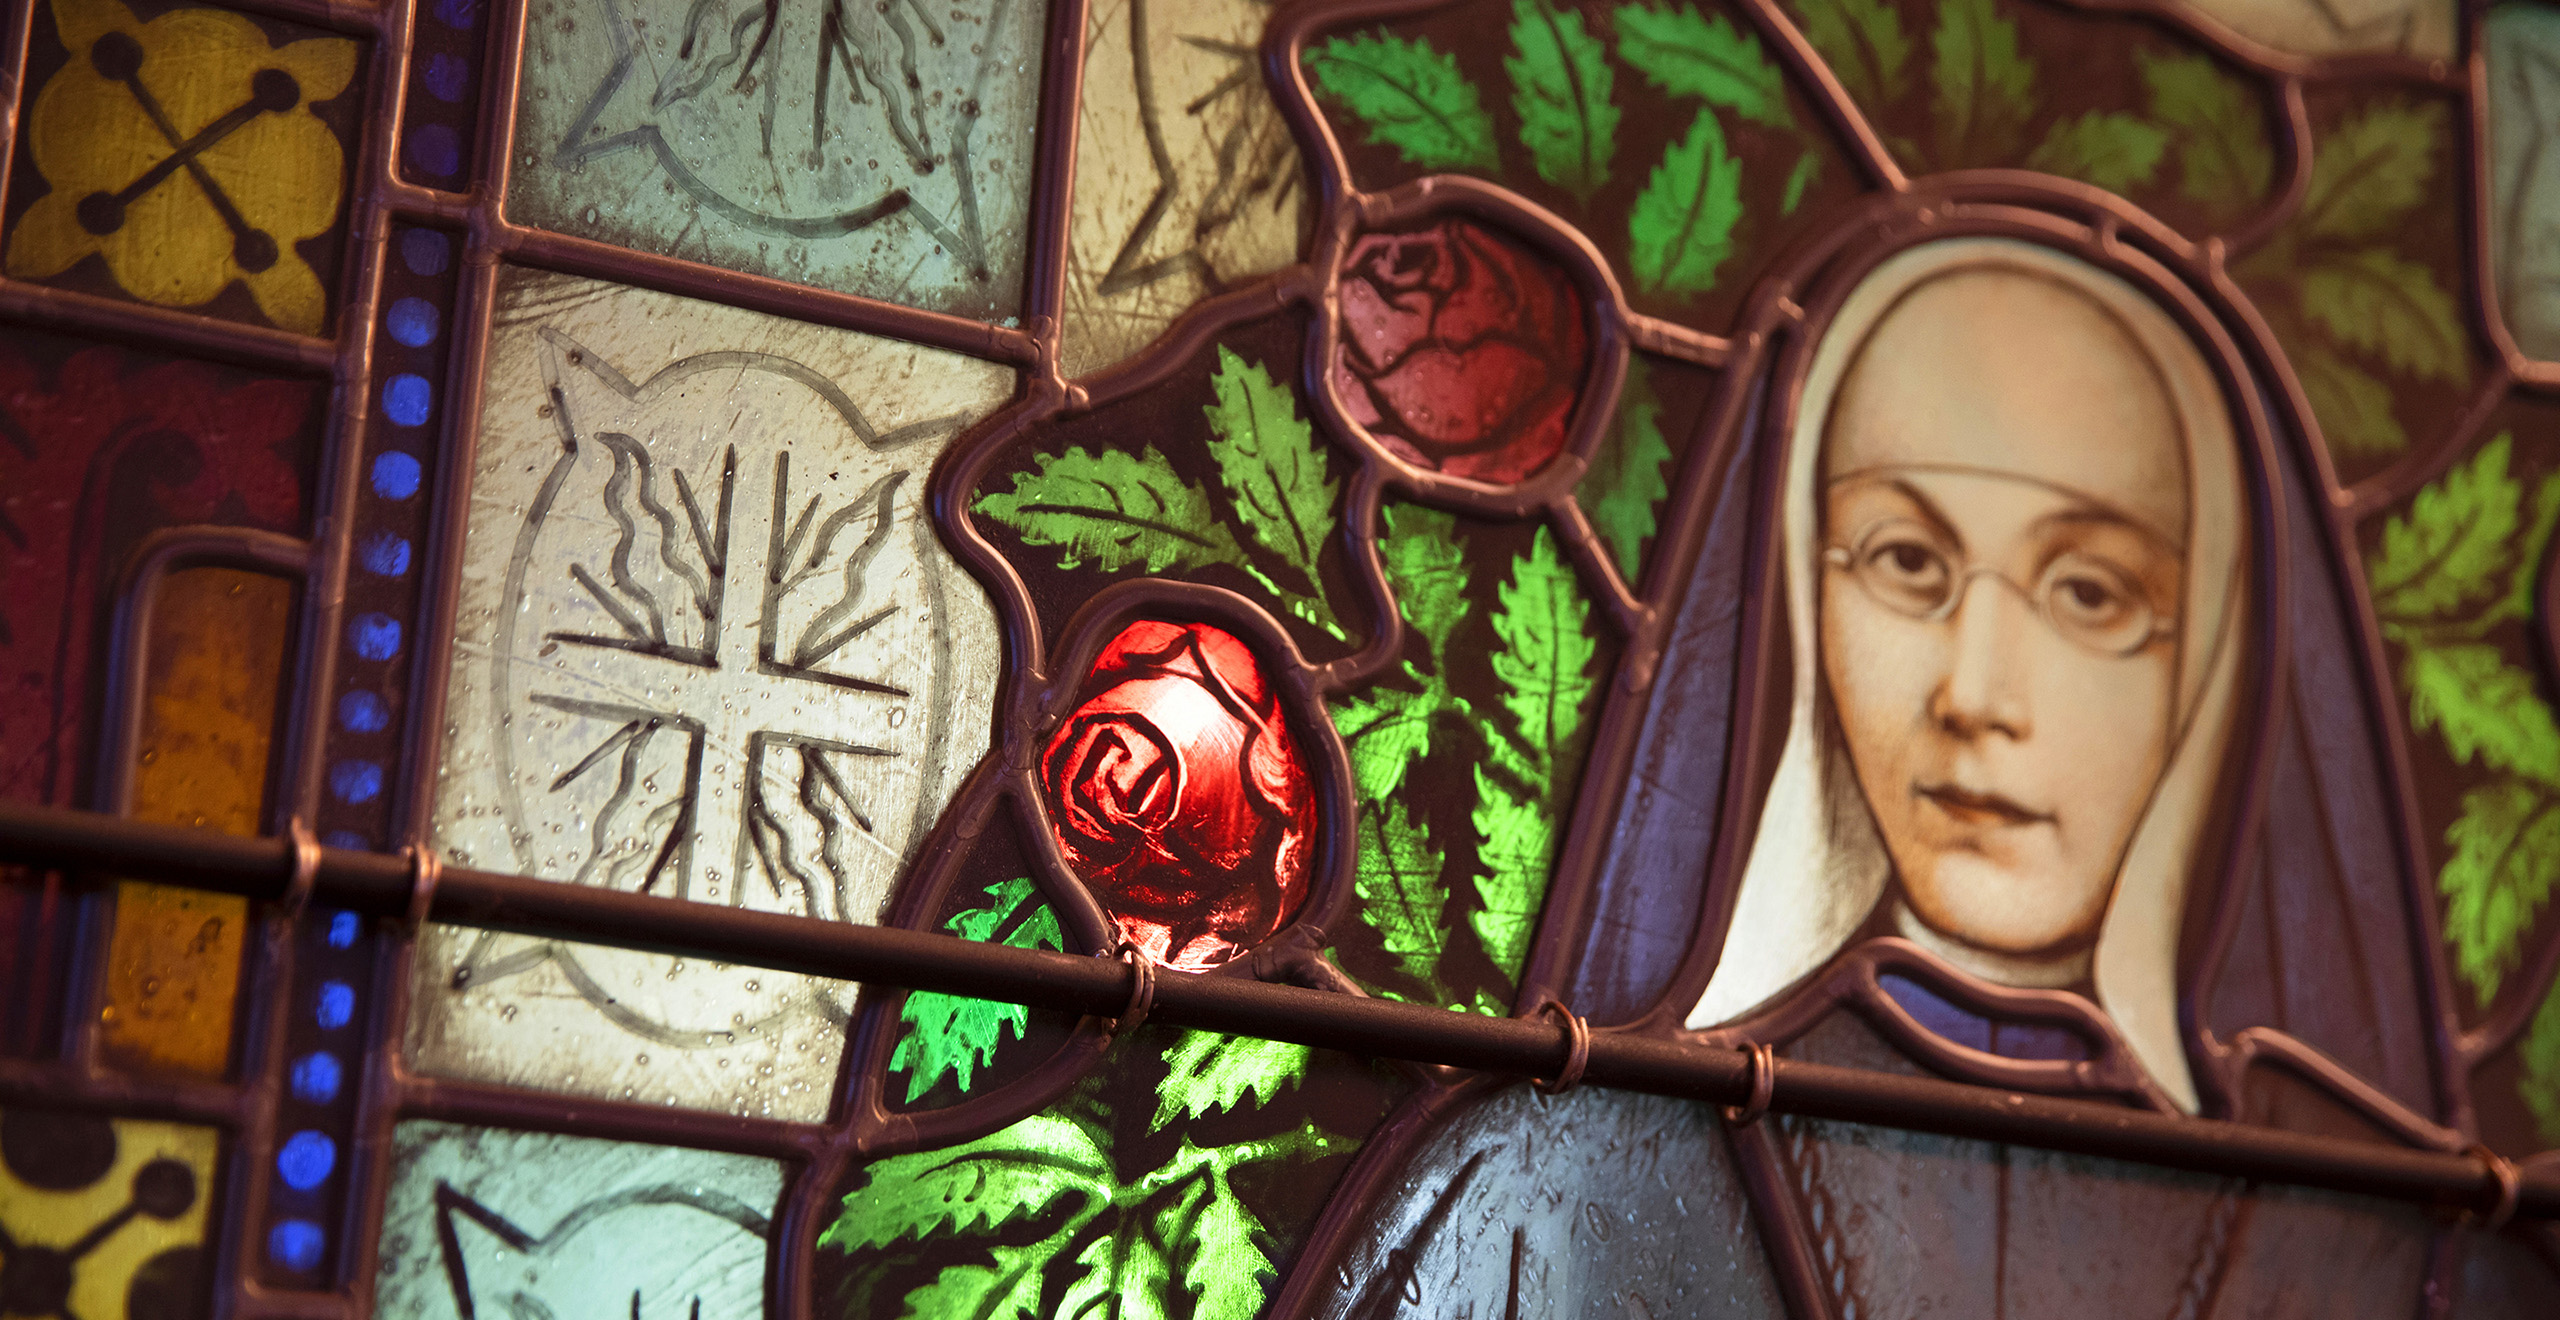 Sister Marie-Rose Durocher Stained Glass